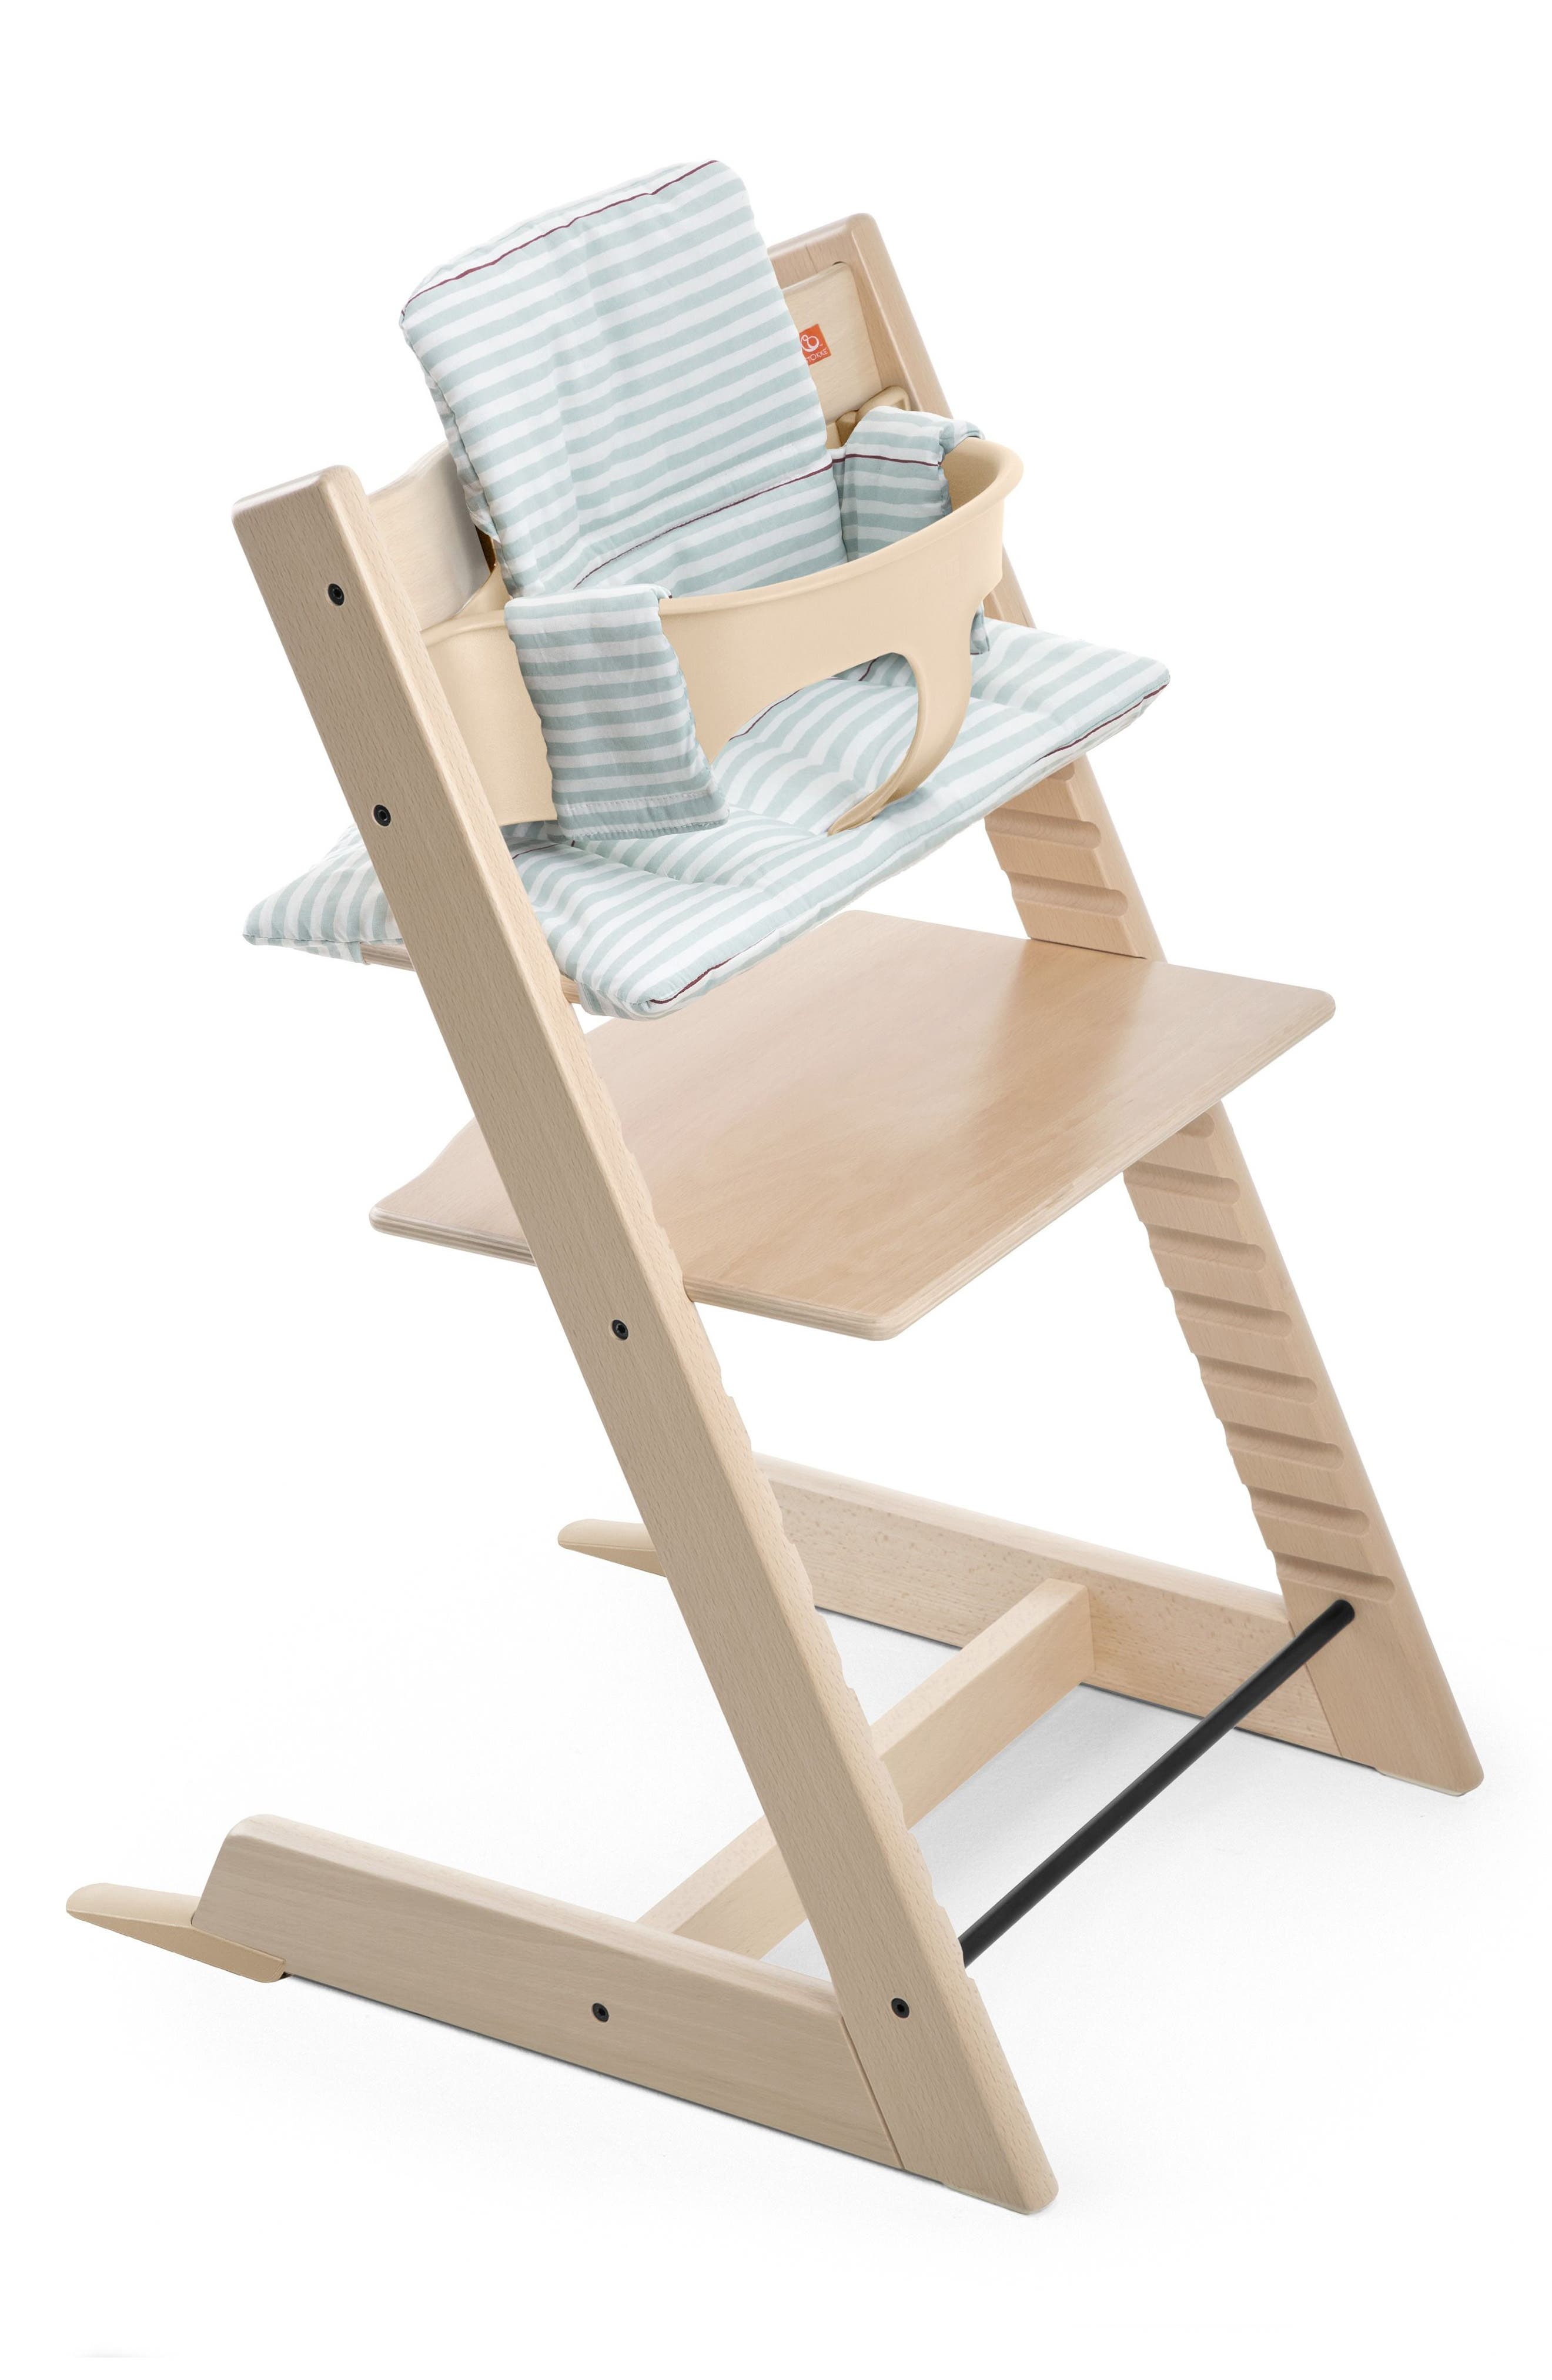 Stokke Tripp Trapp Classic Seat Cushions